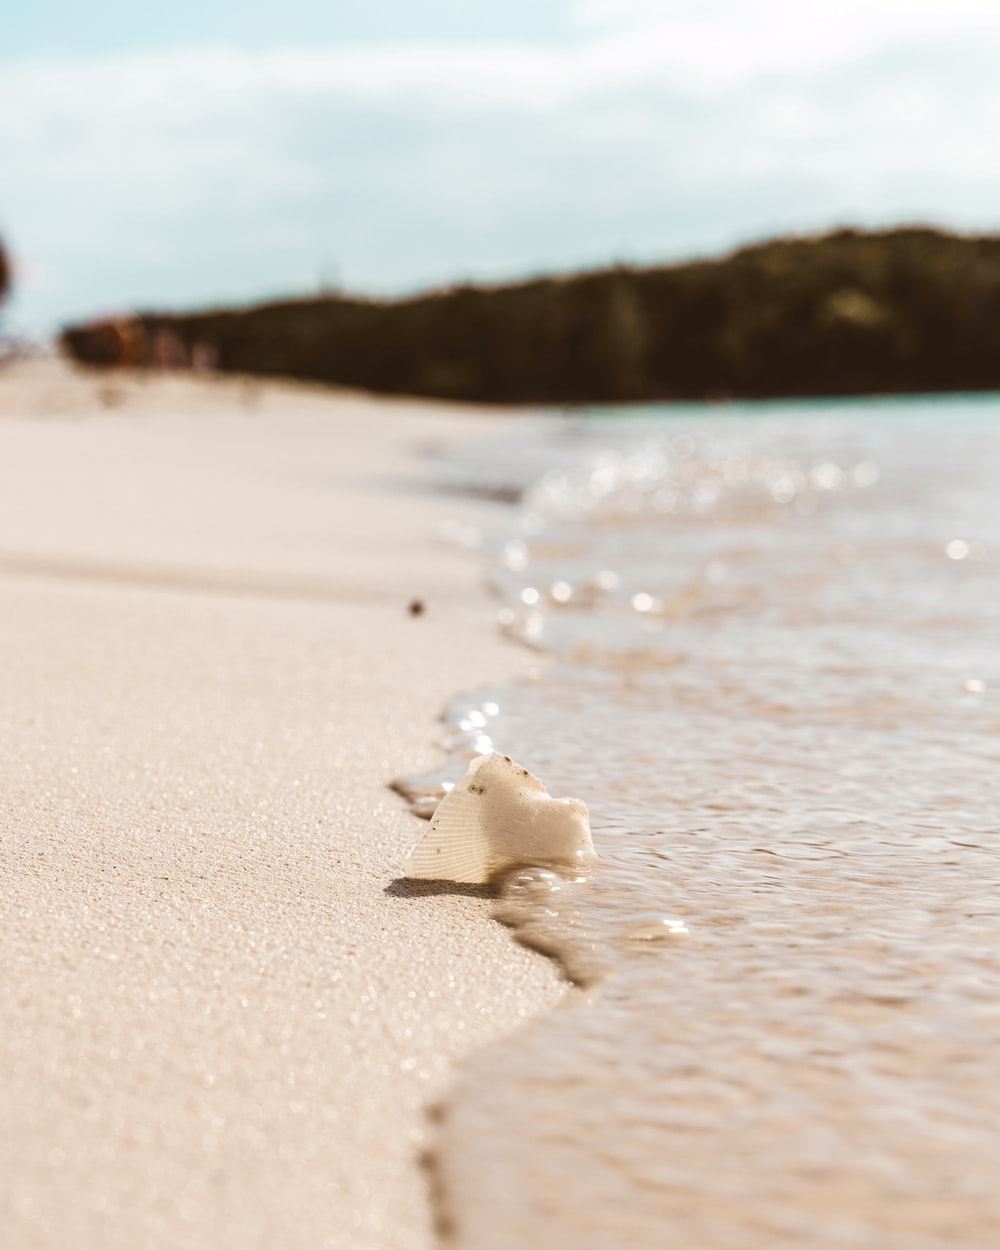 white sea shell on beach during daytime